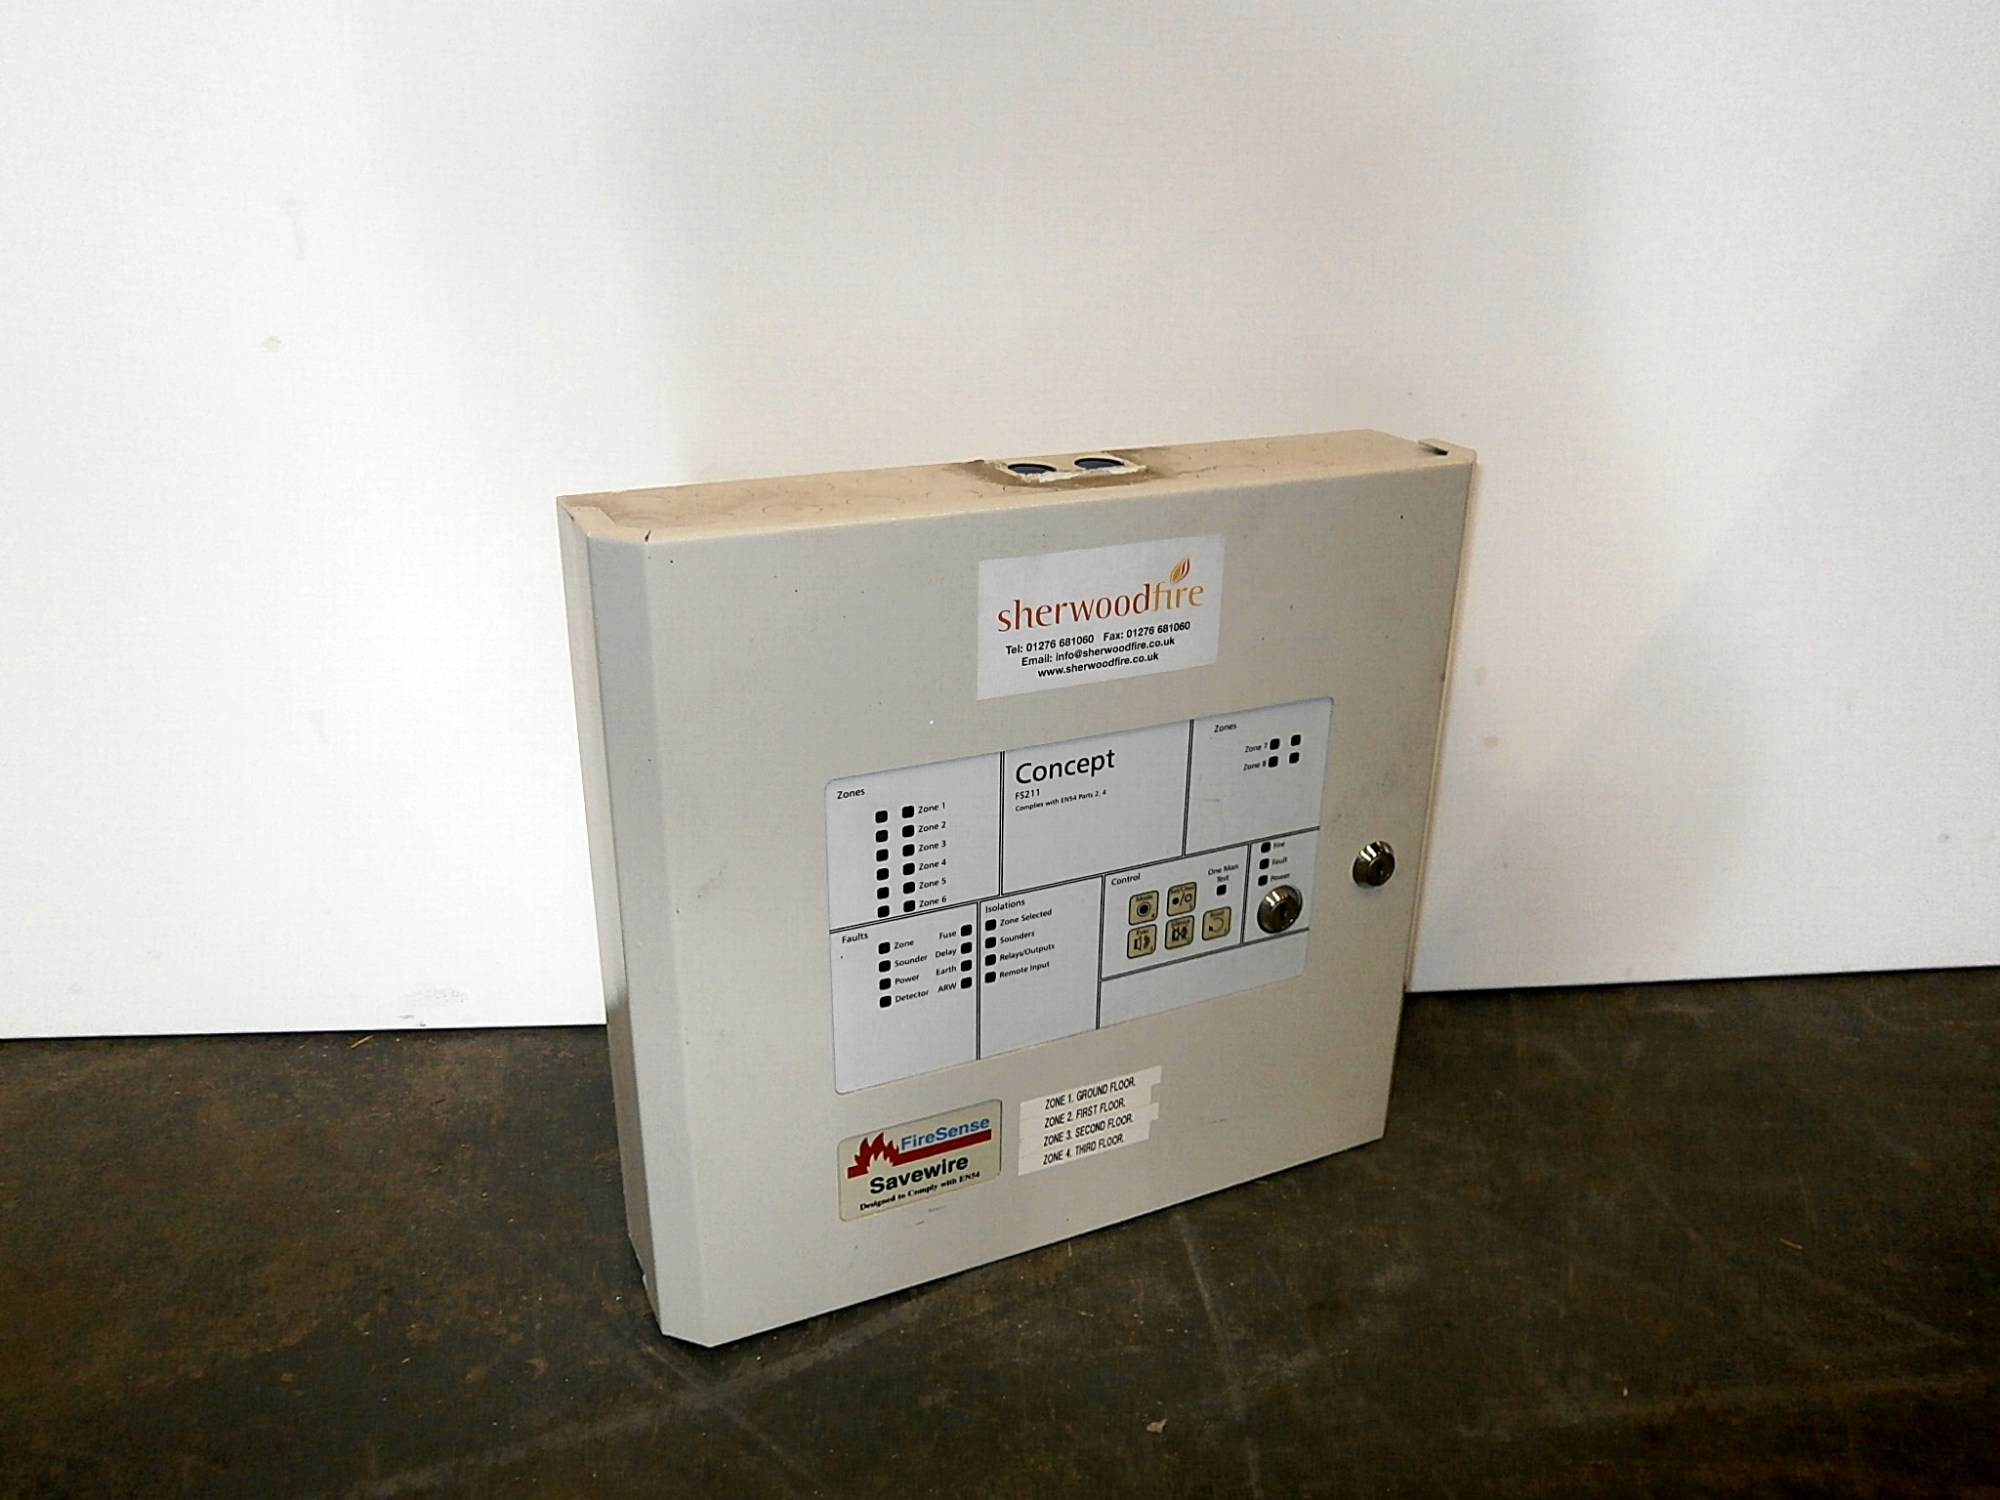 hight resolution of 0310129 modern fuse box h 33cm x 36 x 9 x 1off stockyard prop and backdrop hire